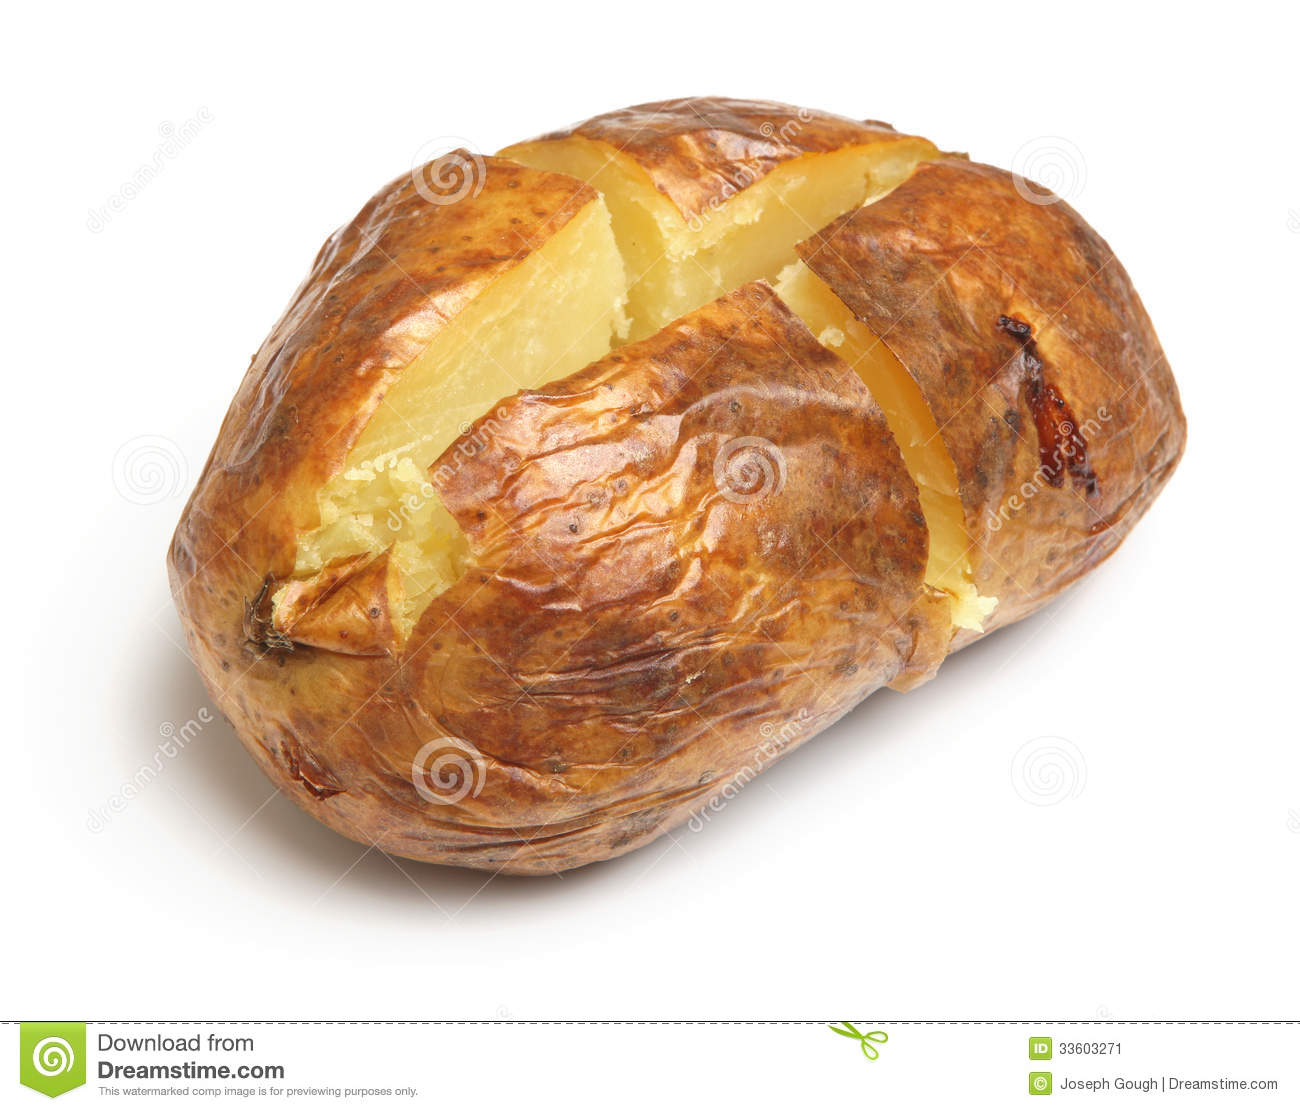 descriptive essay on baked potatoes Essays - largest database of quality sample essays and research papers on descriptive essay on baked potatoes.